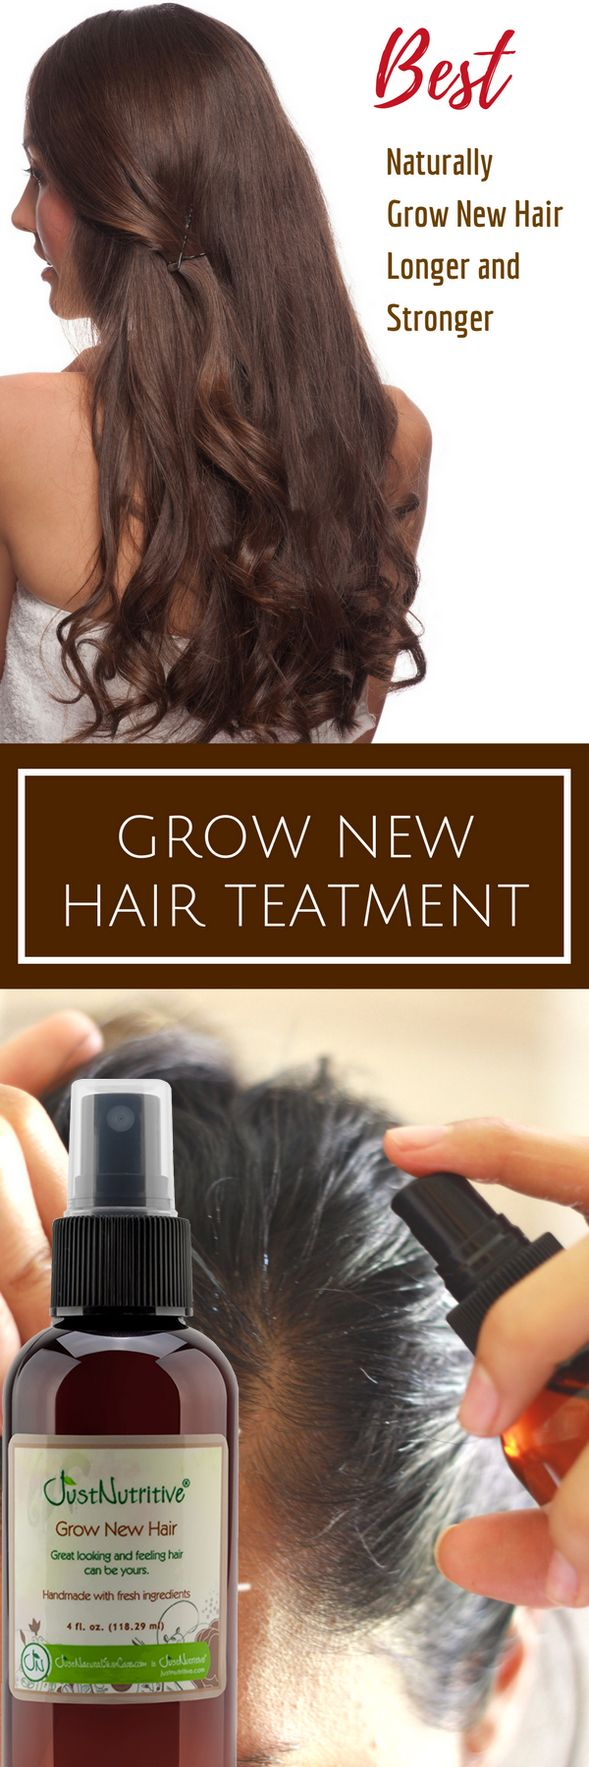 Grow fuller more voluminous looking hair and thicken each individual hair strand...